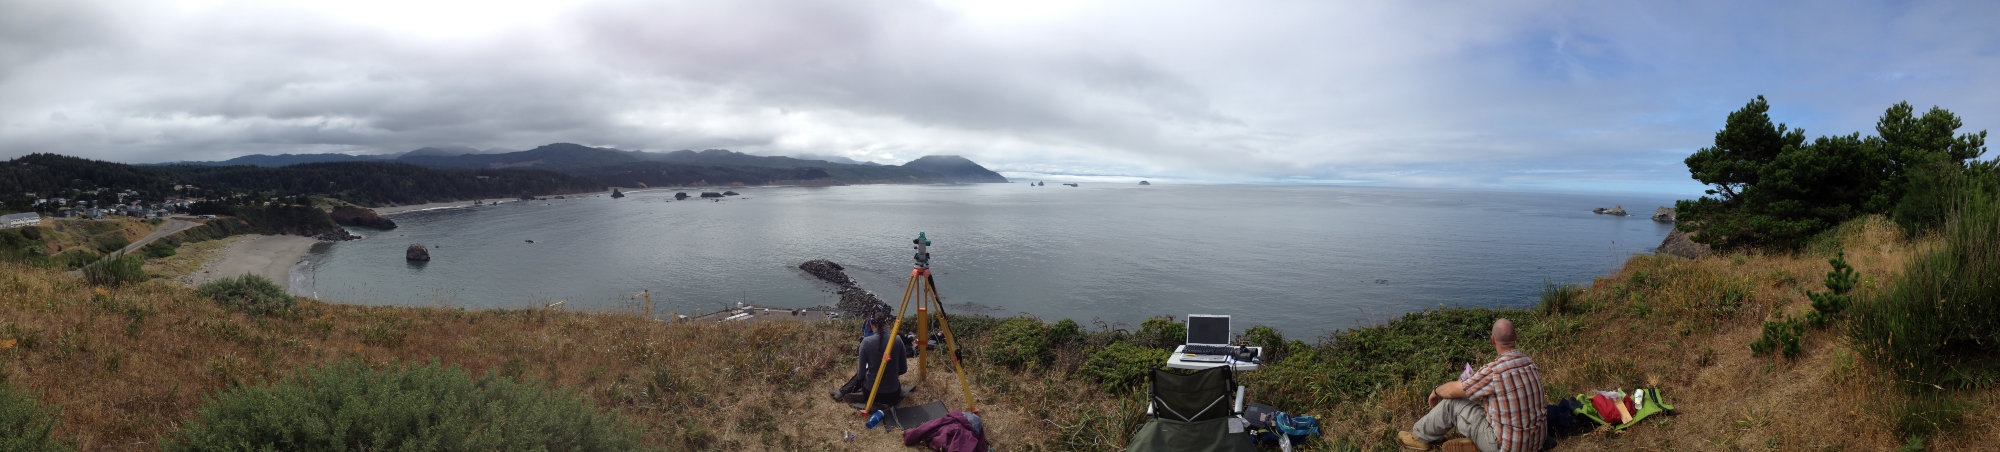 Port Orford Bay panorama